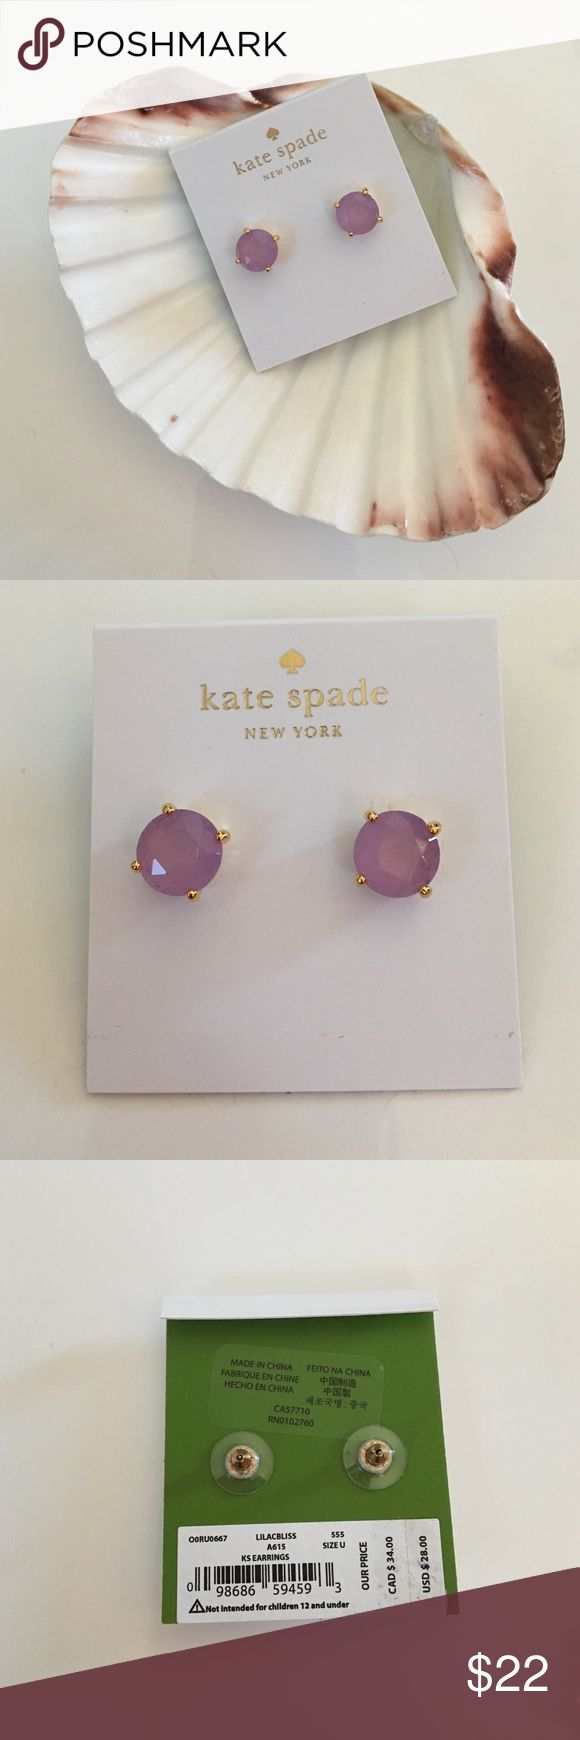 { Kate Spade } stud earrings SALE PRICE FIRM Kate Spade Stud Earrings in LILACBLISS and gold colors. Super cute and a great wardrobe addition. kate spade Jewelry Earrings